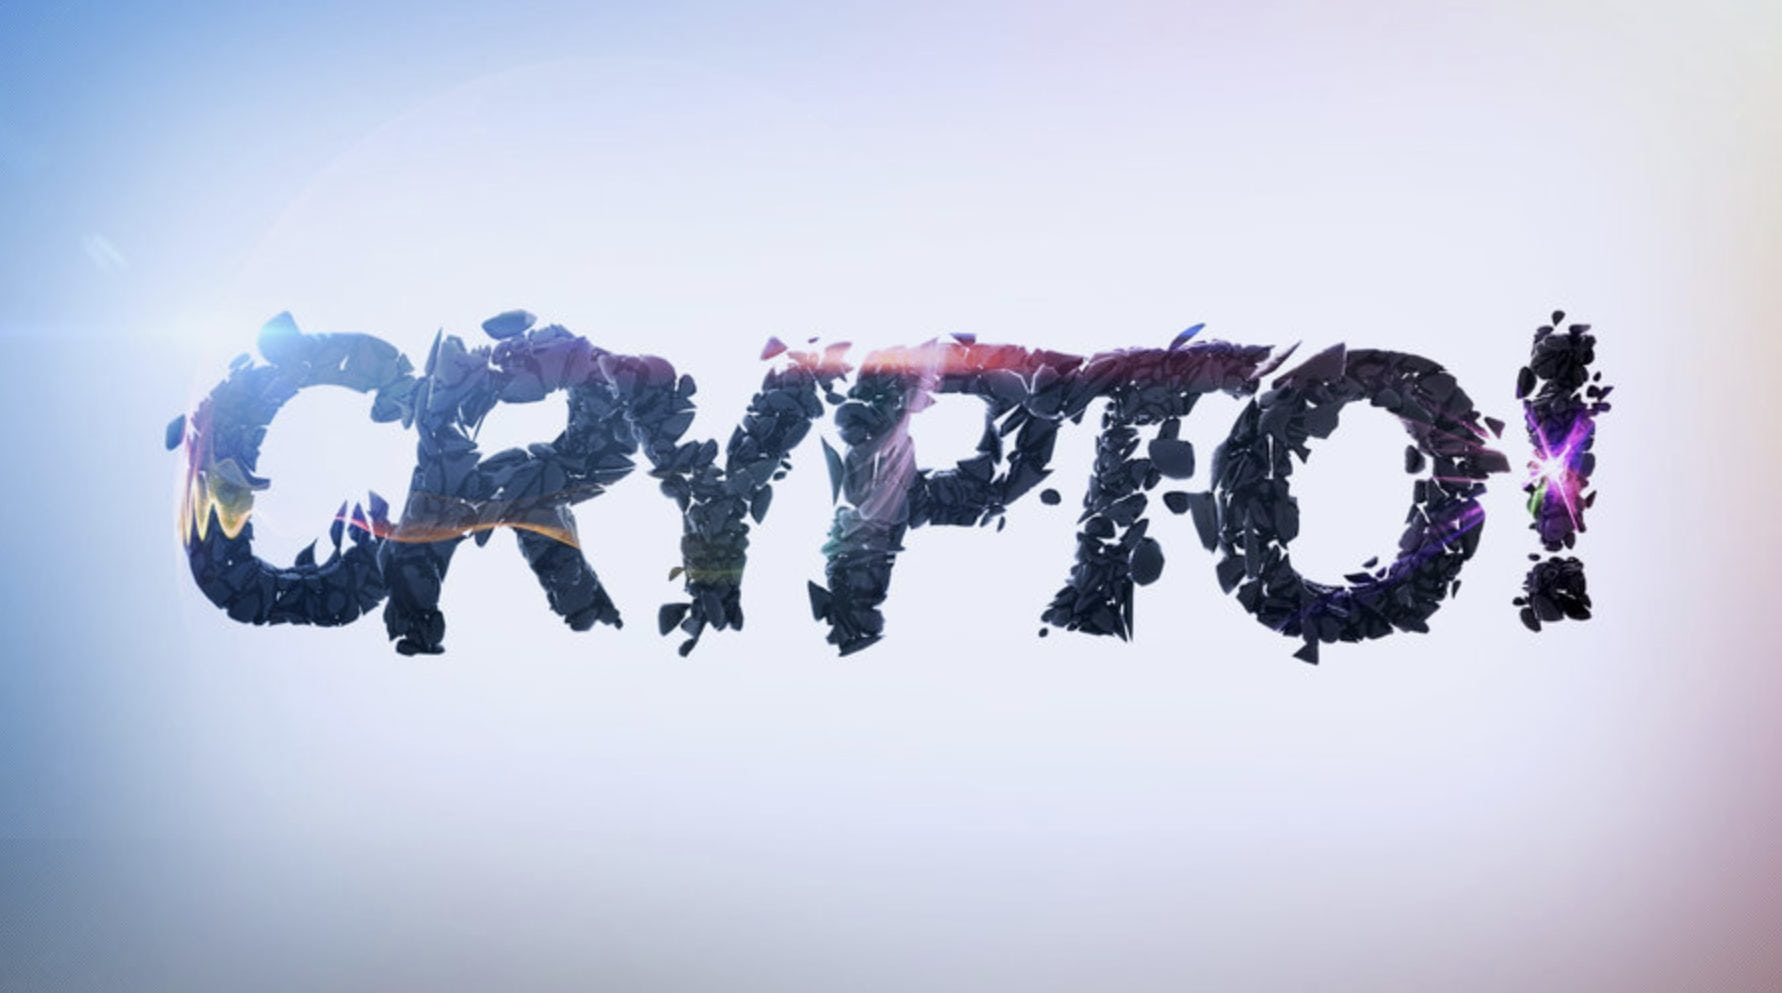 1 chVY5UAmYsqi2XMwQ5LWbg - Large Corporations Could Launch Their Own Cryptos - Corporate Tokens Are Around The Corner